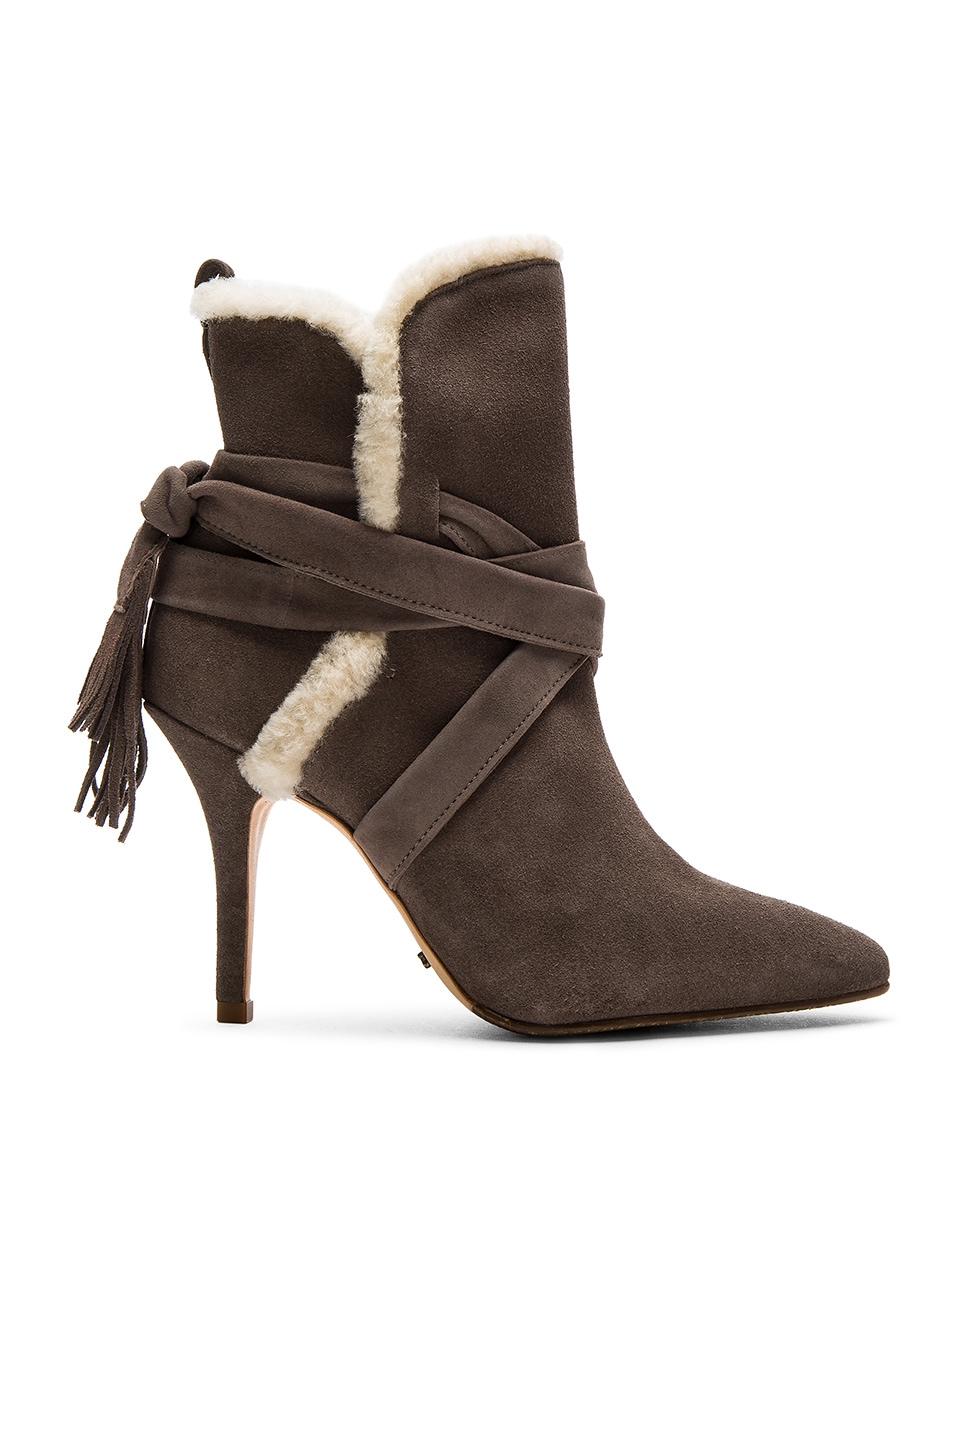 Schutz Finn Sheep Fur Bootie in Neutral Gray Cream